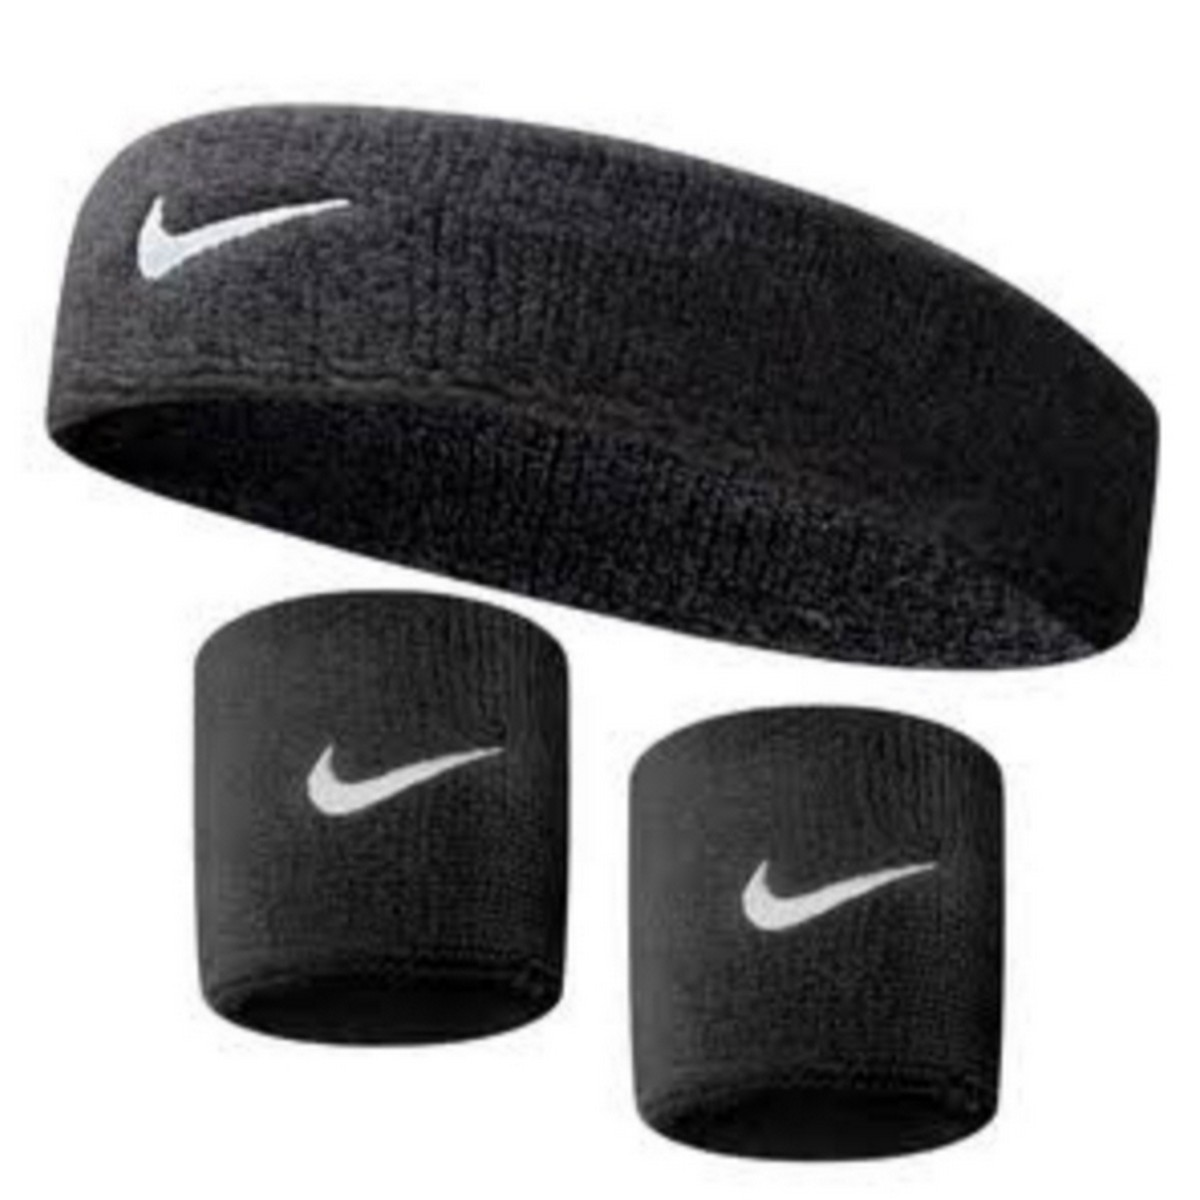 Pack Of 2 - Wrist Band & Head Band gym weight lifting weight lose home gym hand grip lifting